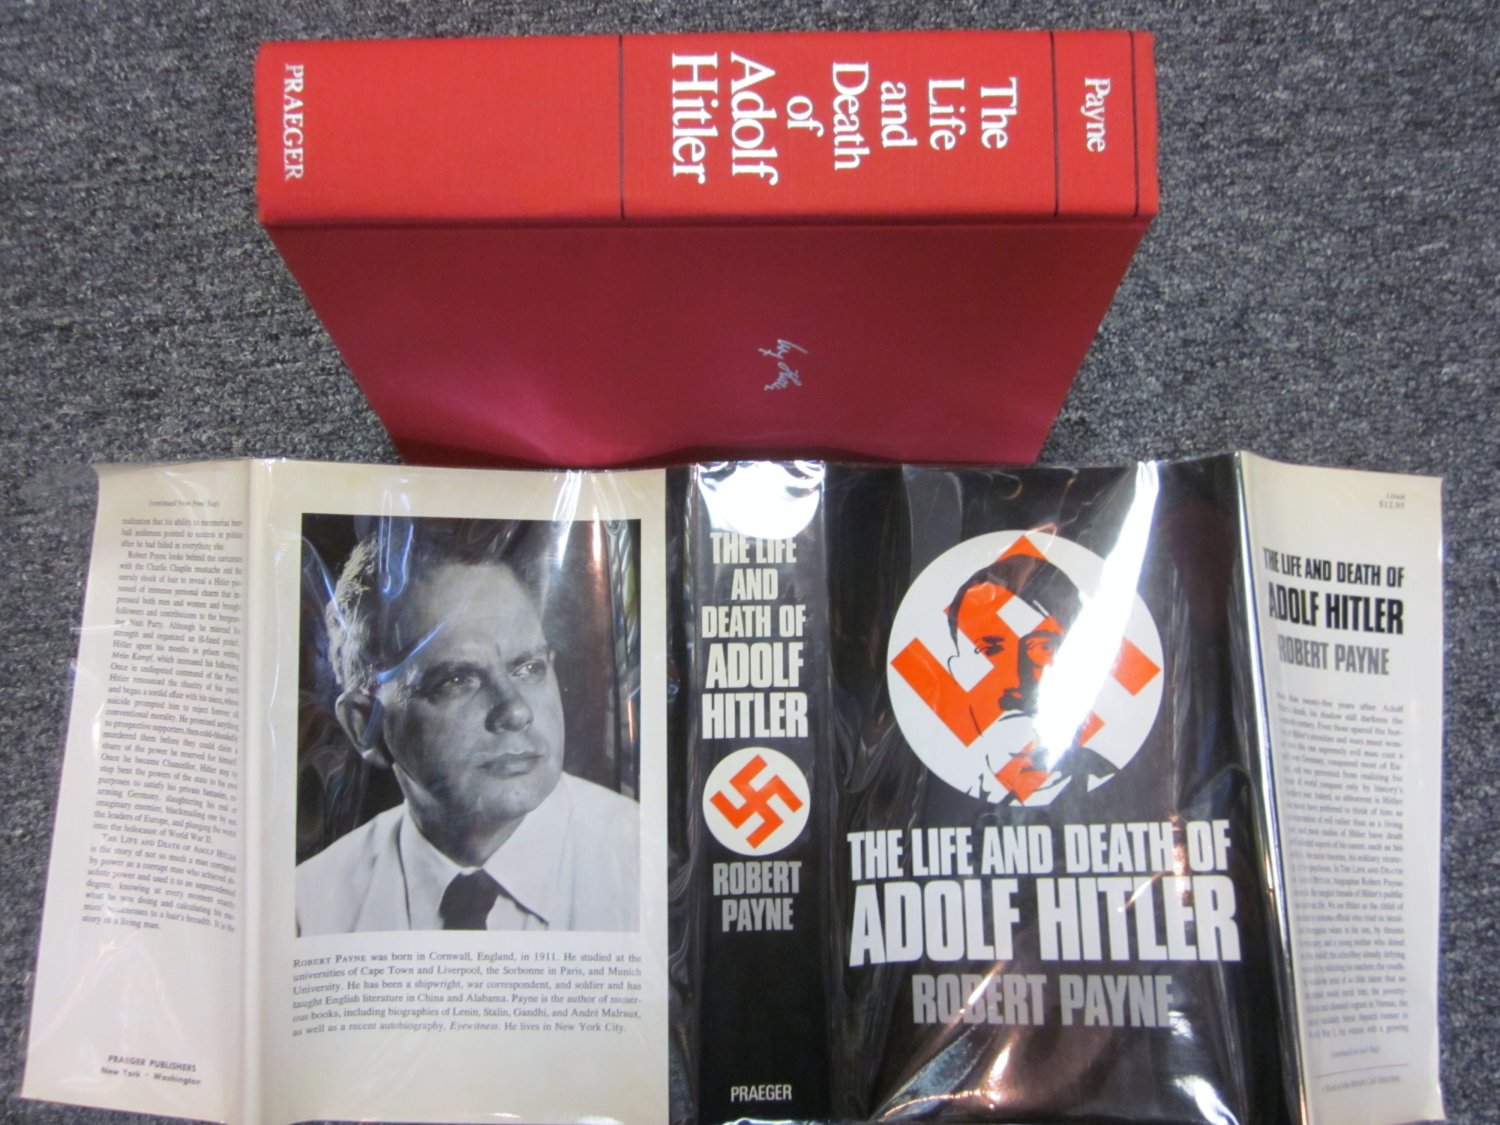 THE LIFE AND DEATH OF ADOLF HITLER WWll